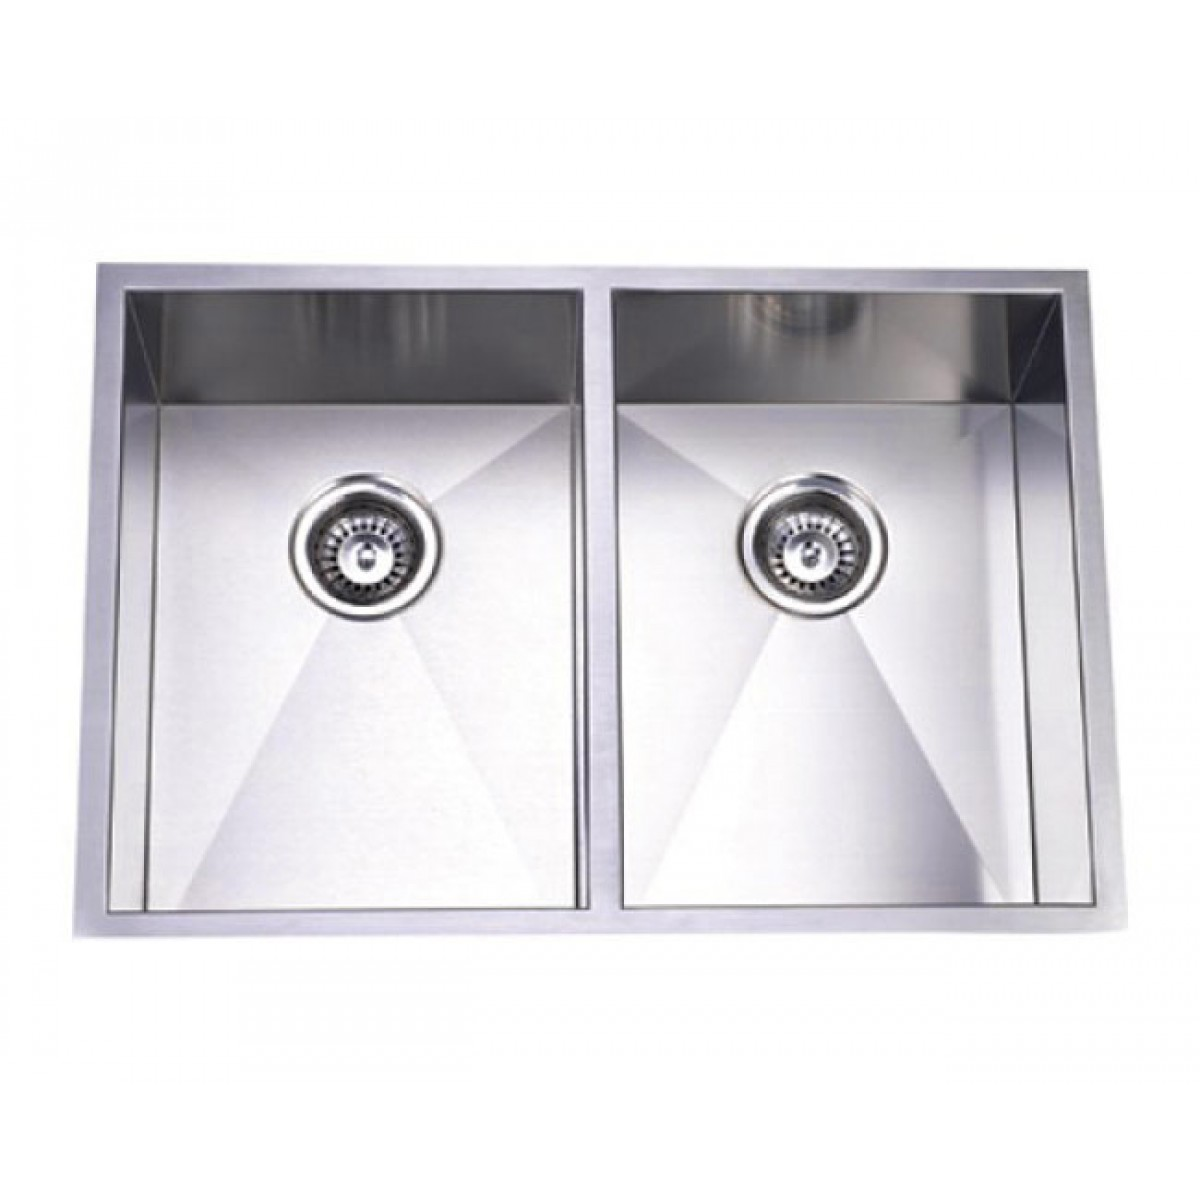 29 Inch Stainless Steel Undermount 50 Double Bowl Kitchen Sink Zero Radius Design